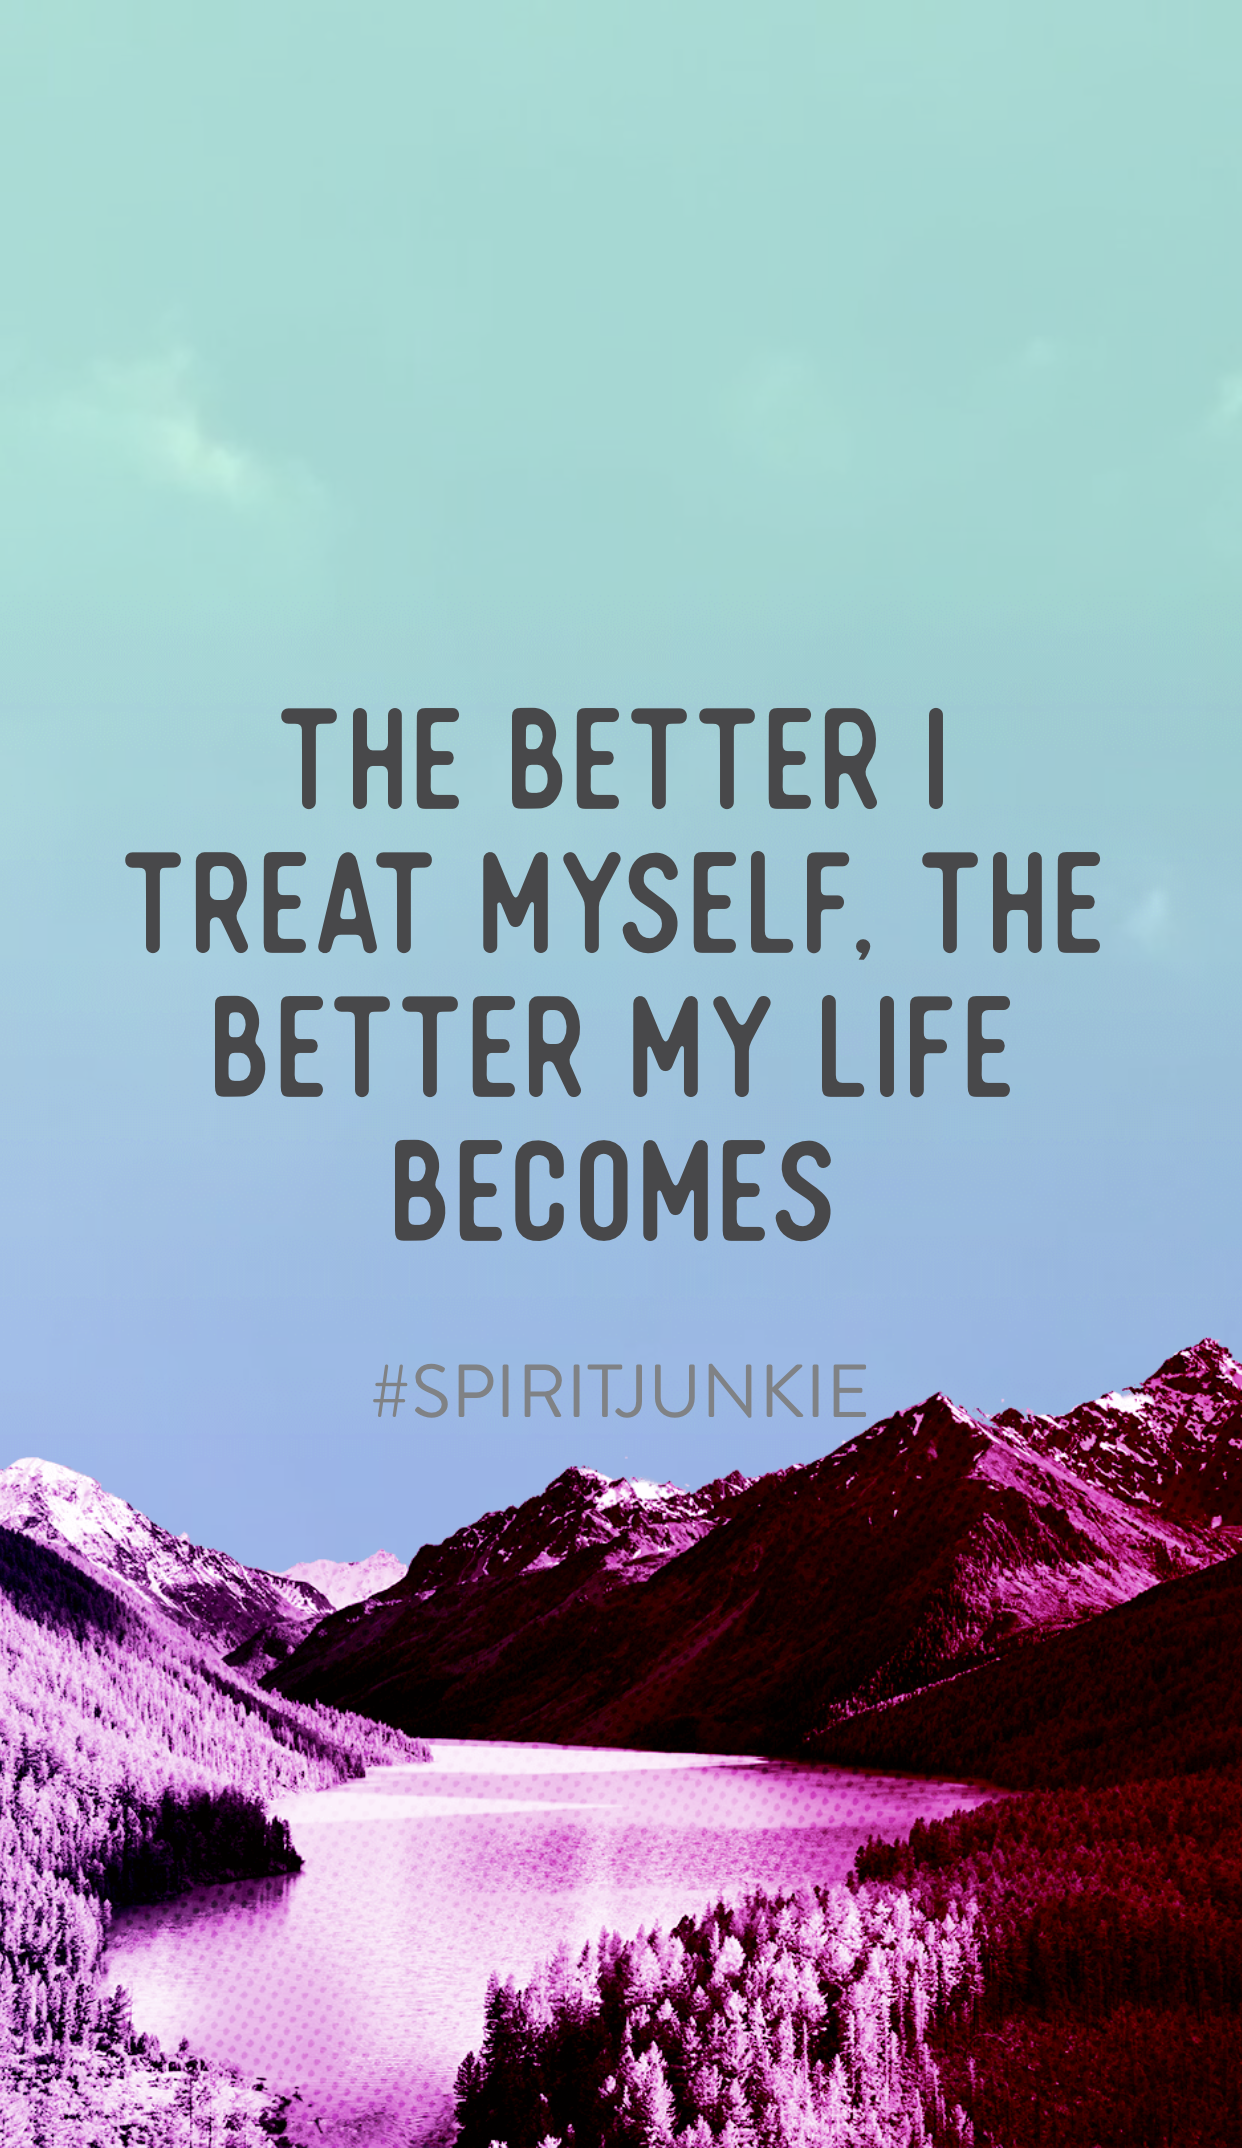 The better I treat myself, the better my life becomes | Spirit Junkie App by Gabby Bernstein